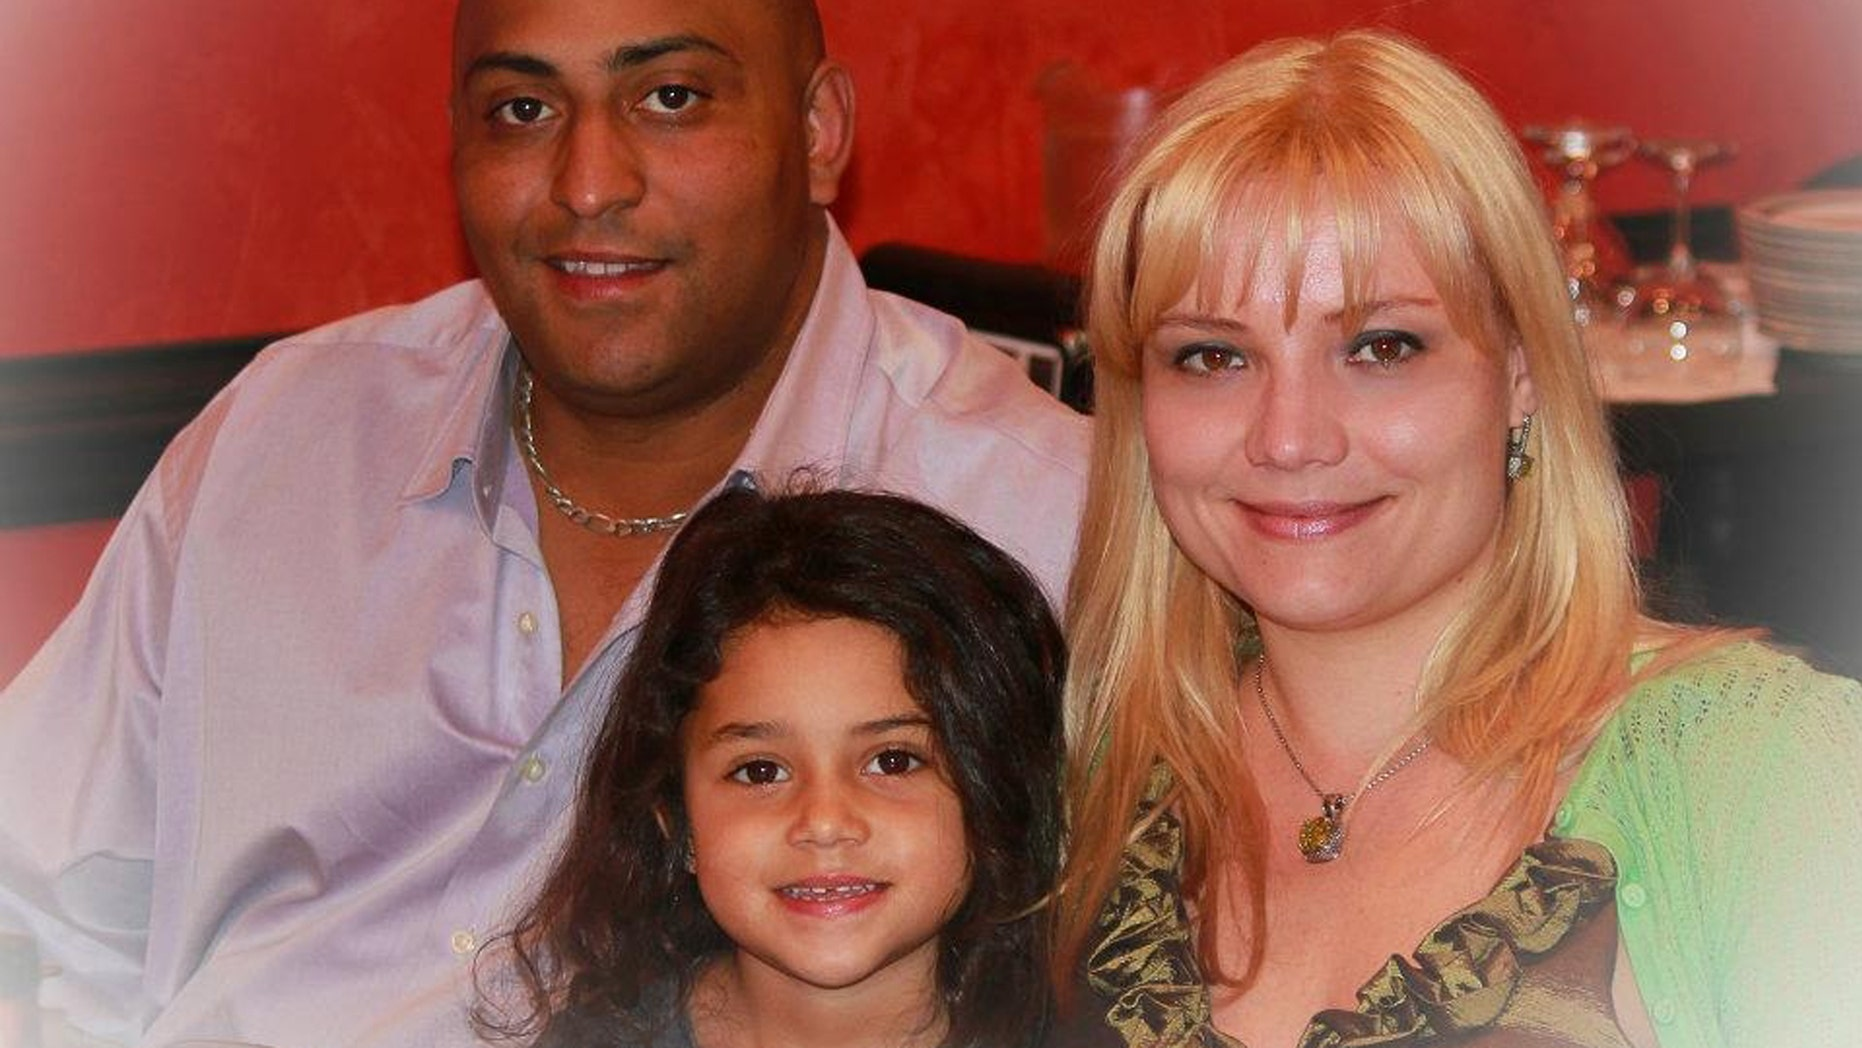 Hamlet Garcia, 42, his wife, Olesia Garica, 34, and their seven year old daughter Fiorella.